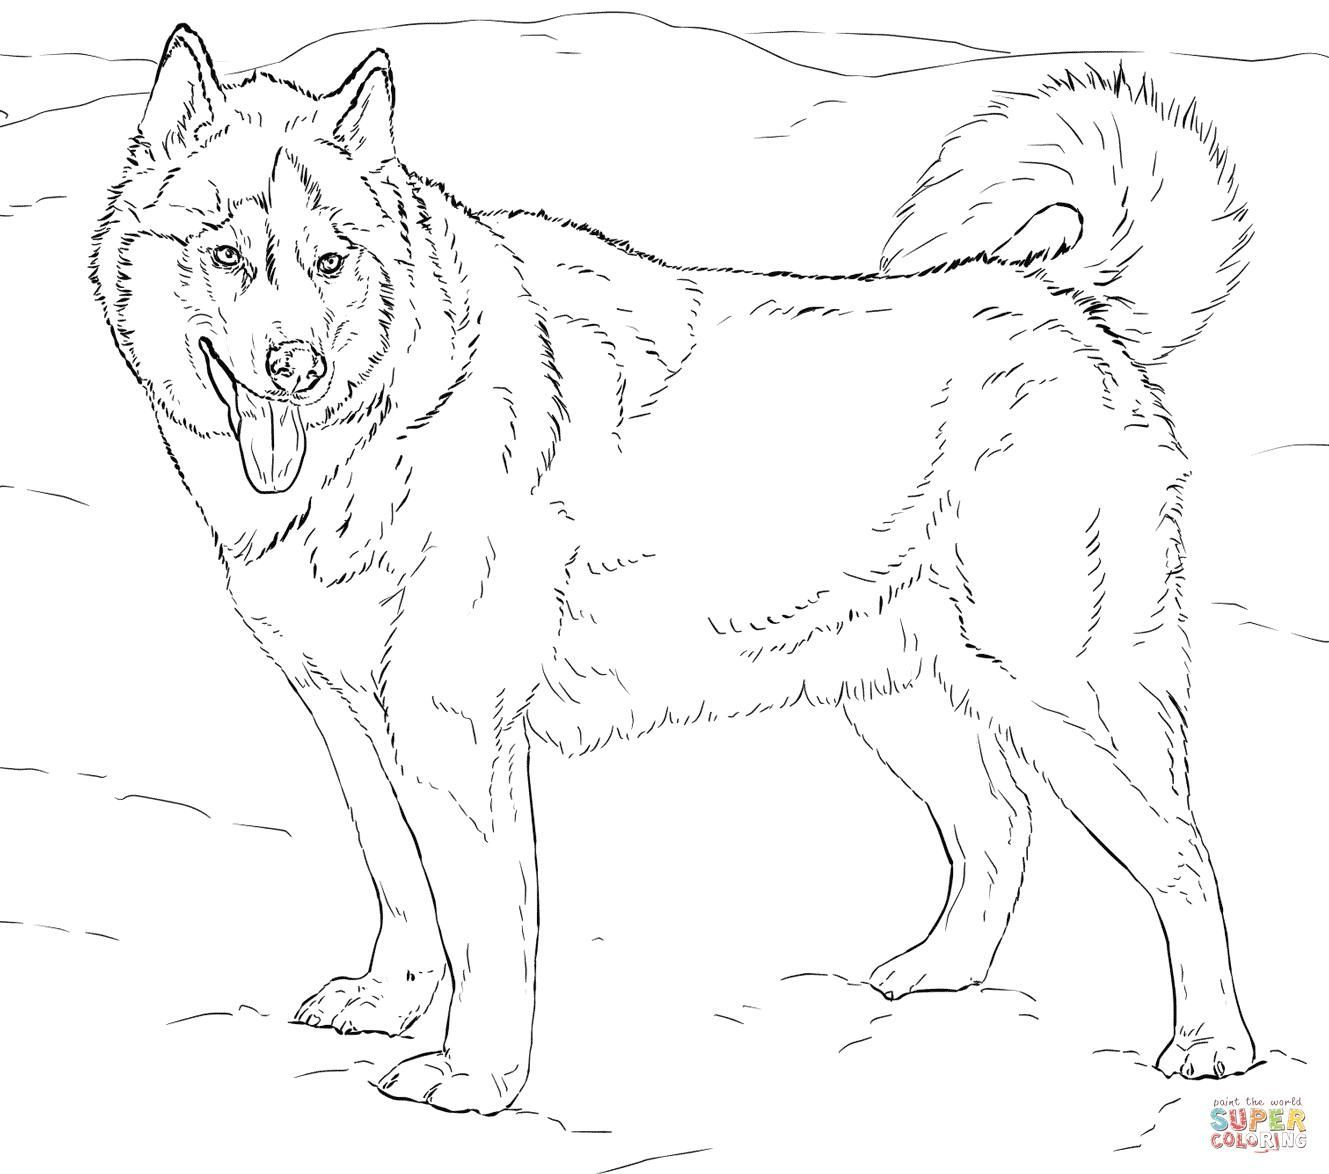 Good Husky Coloring Pages Wecoloringpage Shark Coloring Pages Dog Coloring Page Puppy Coloring Pages [ 1049 x 1100 Pixel ]